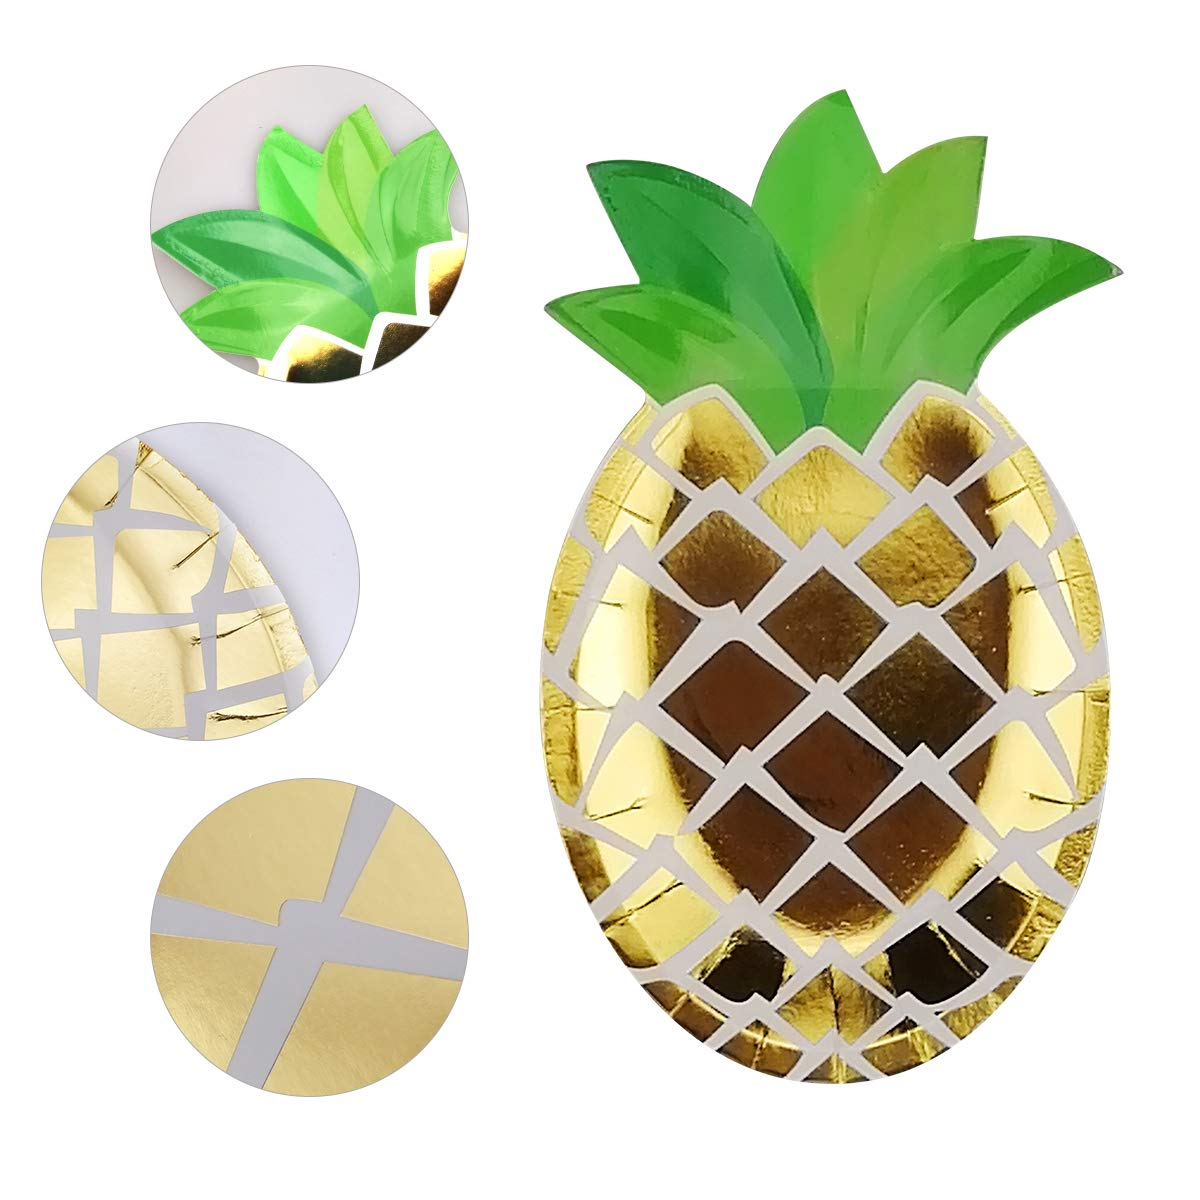 24 Count Pineapple Plates Disposable Party Paper Plates Disposable Tableware Set for Baby Shower Wedding Hawaiian Party Birthday Party Luau BBQ Party Supplies